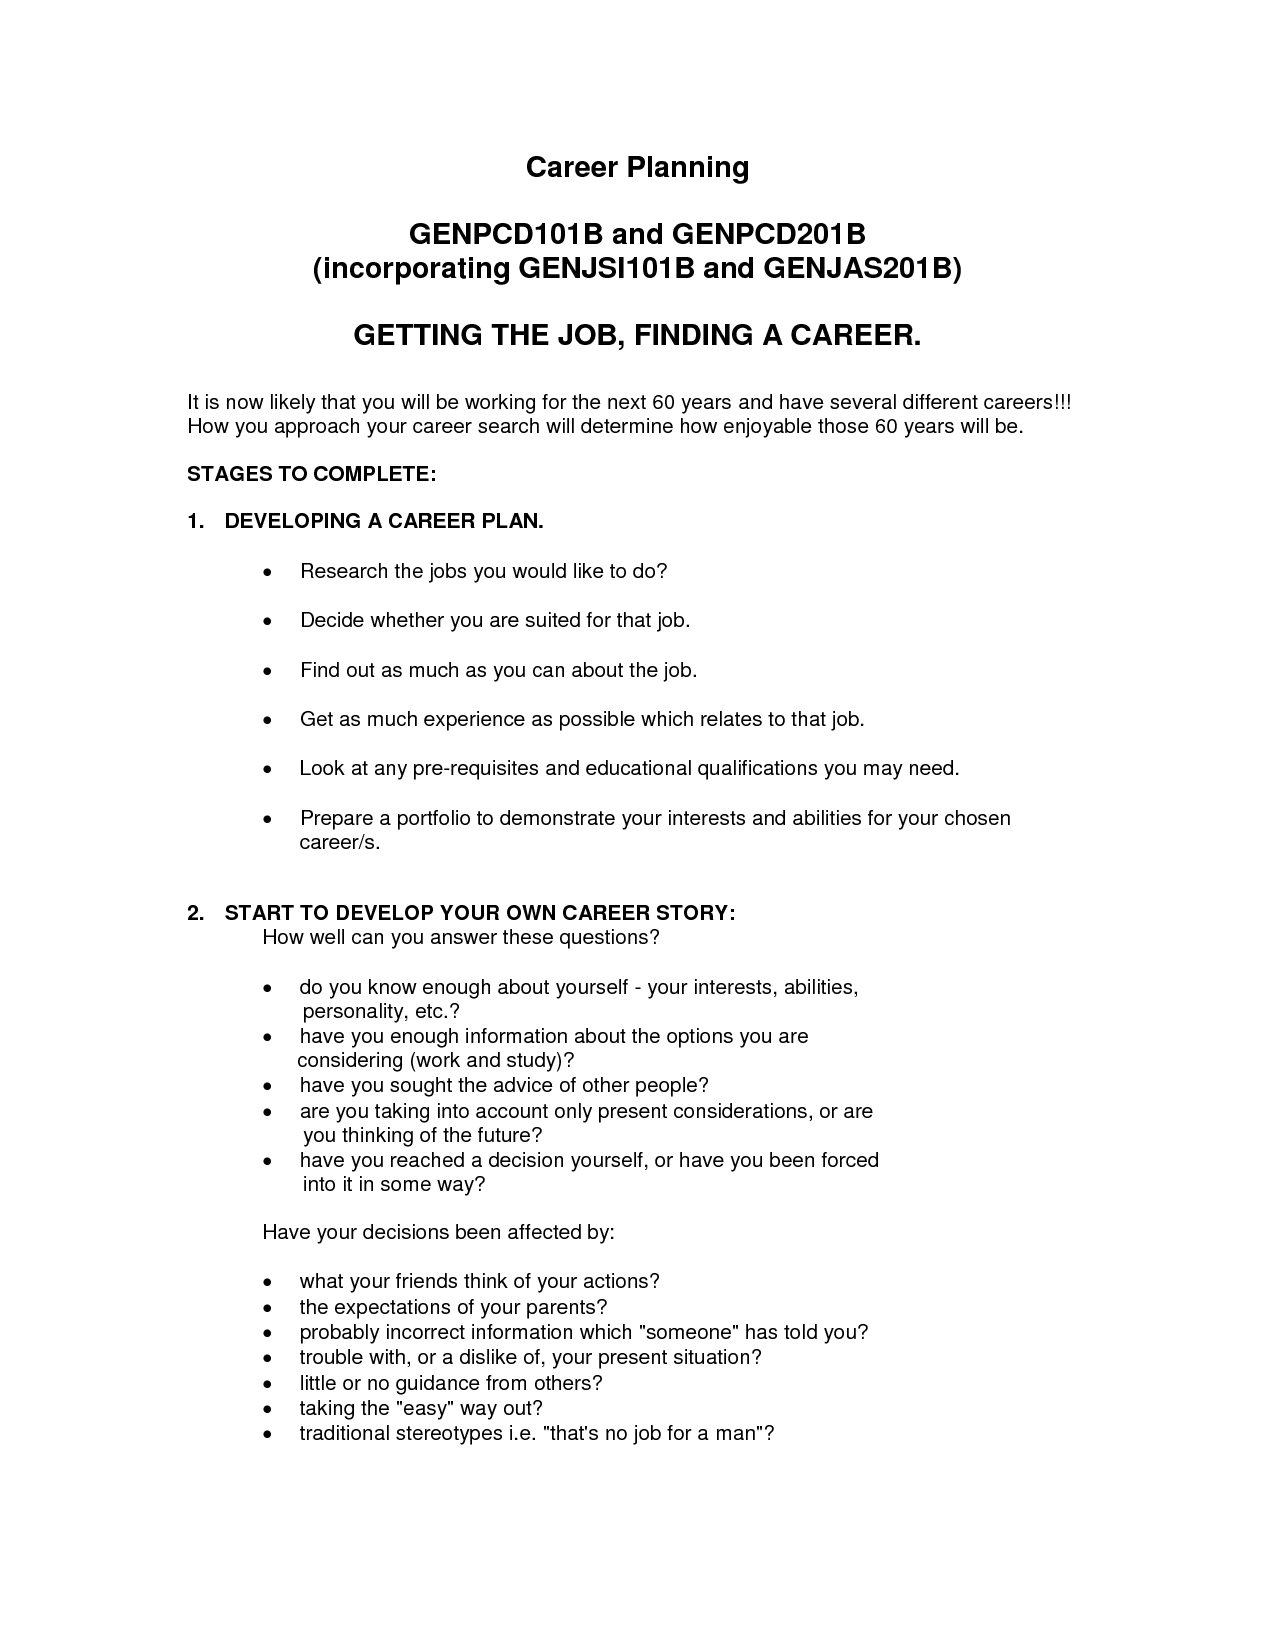 Professional Resume Cover Letter Sample | Resume Cover ...